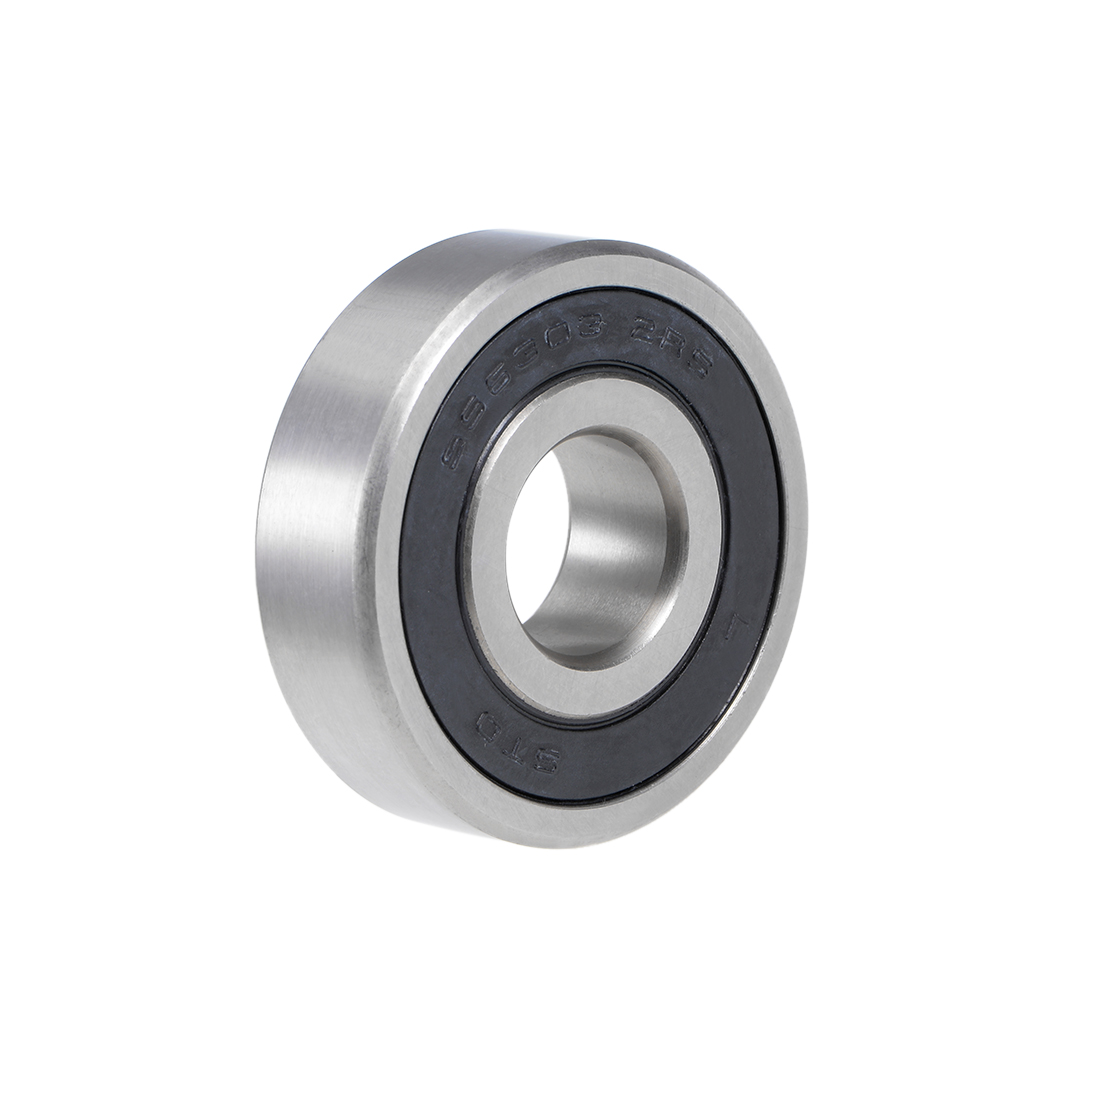 S6303-2RS Stainless Steel Ball Bearing 17x47x14mm Double Sealed 6303RS Bearings